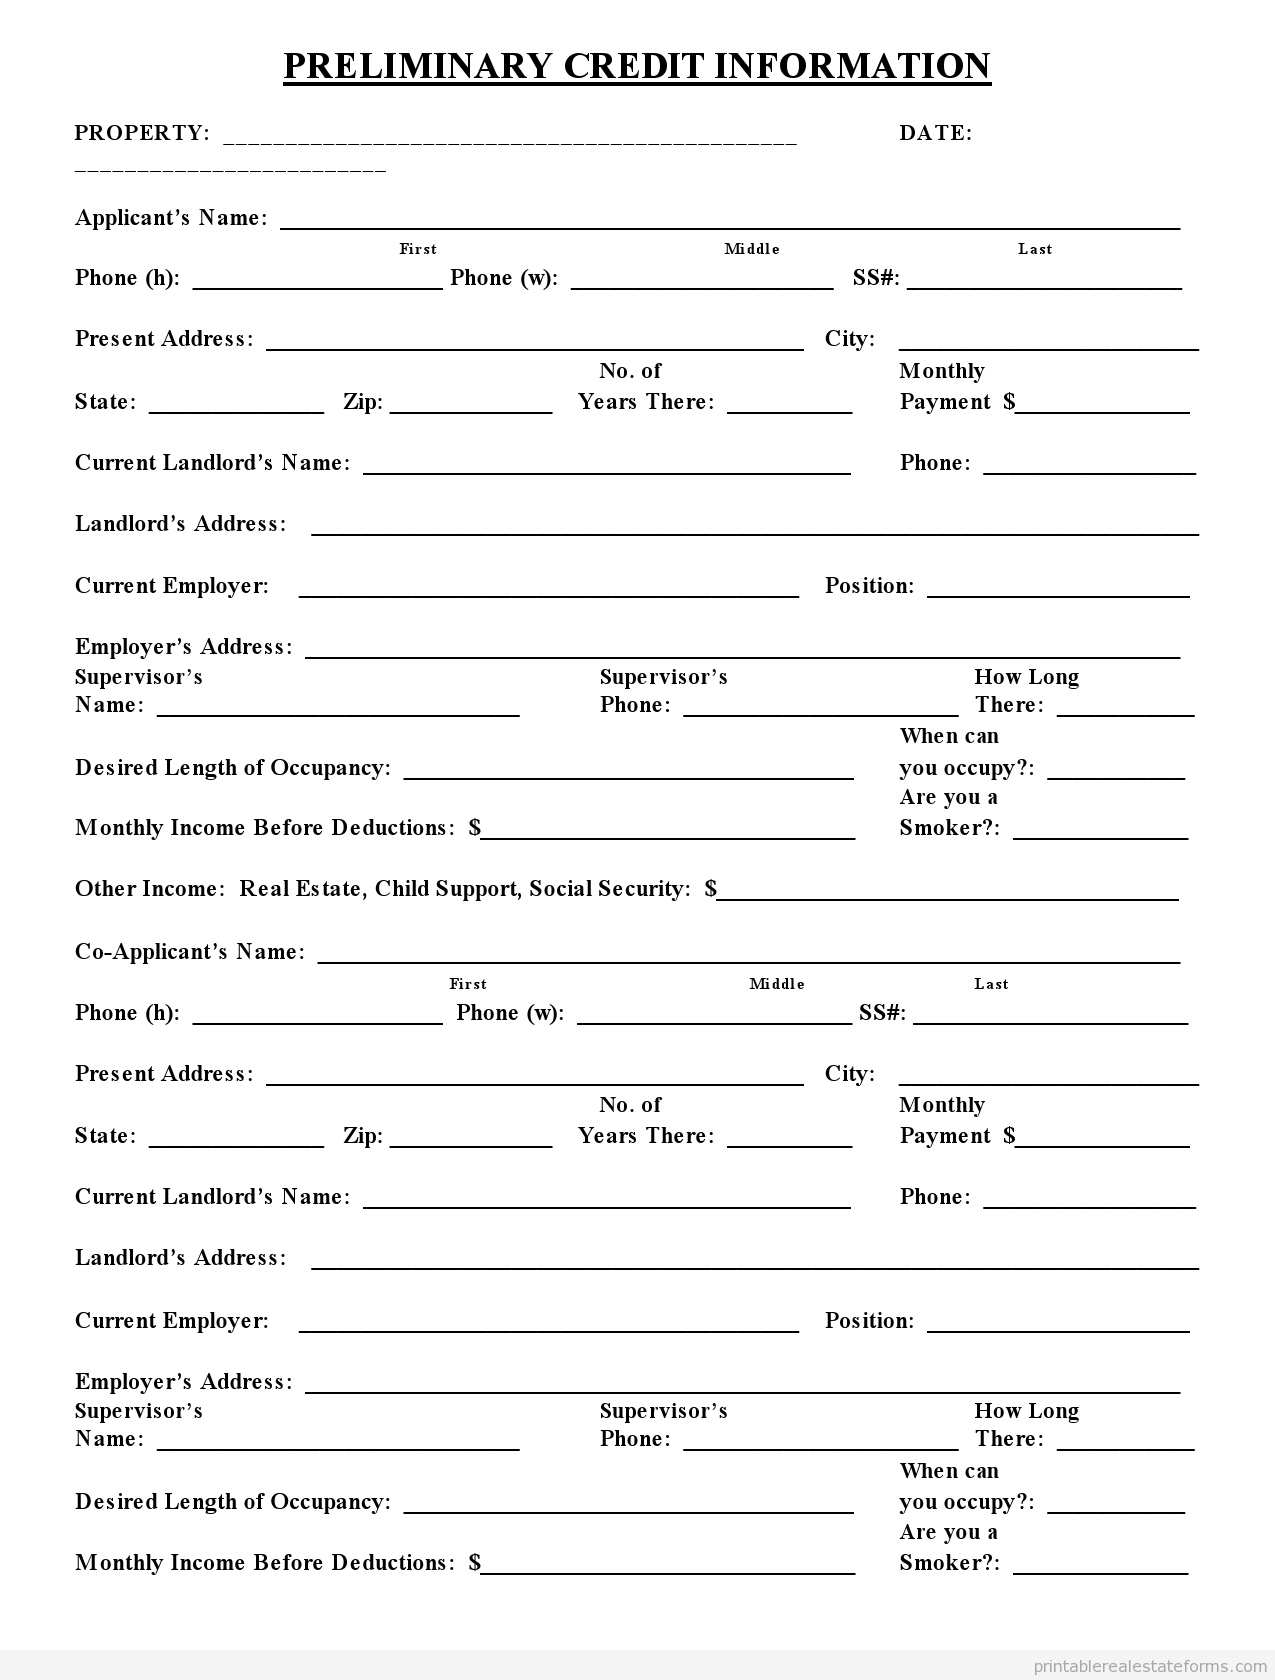 Printable Sample Preliminary Credit Application  Form  Generic